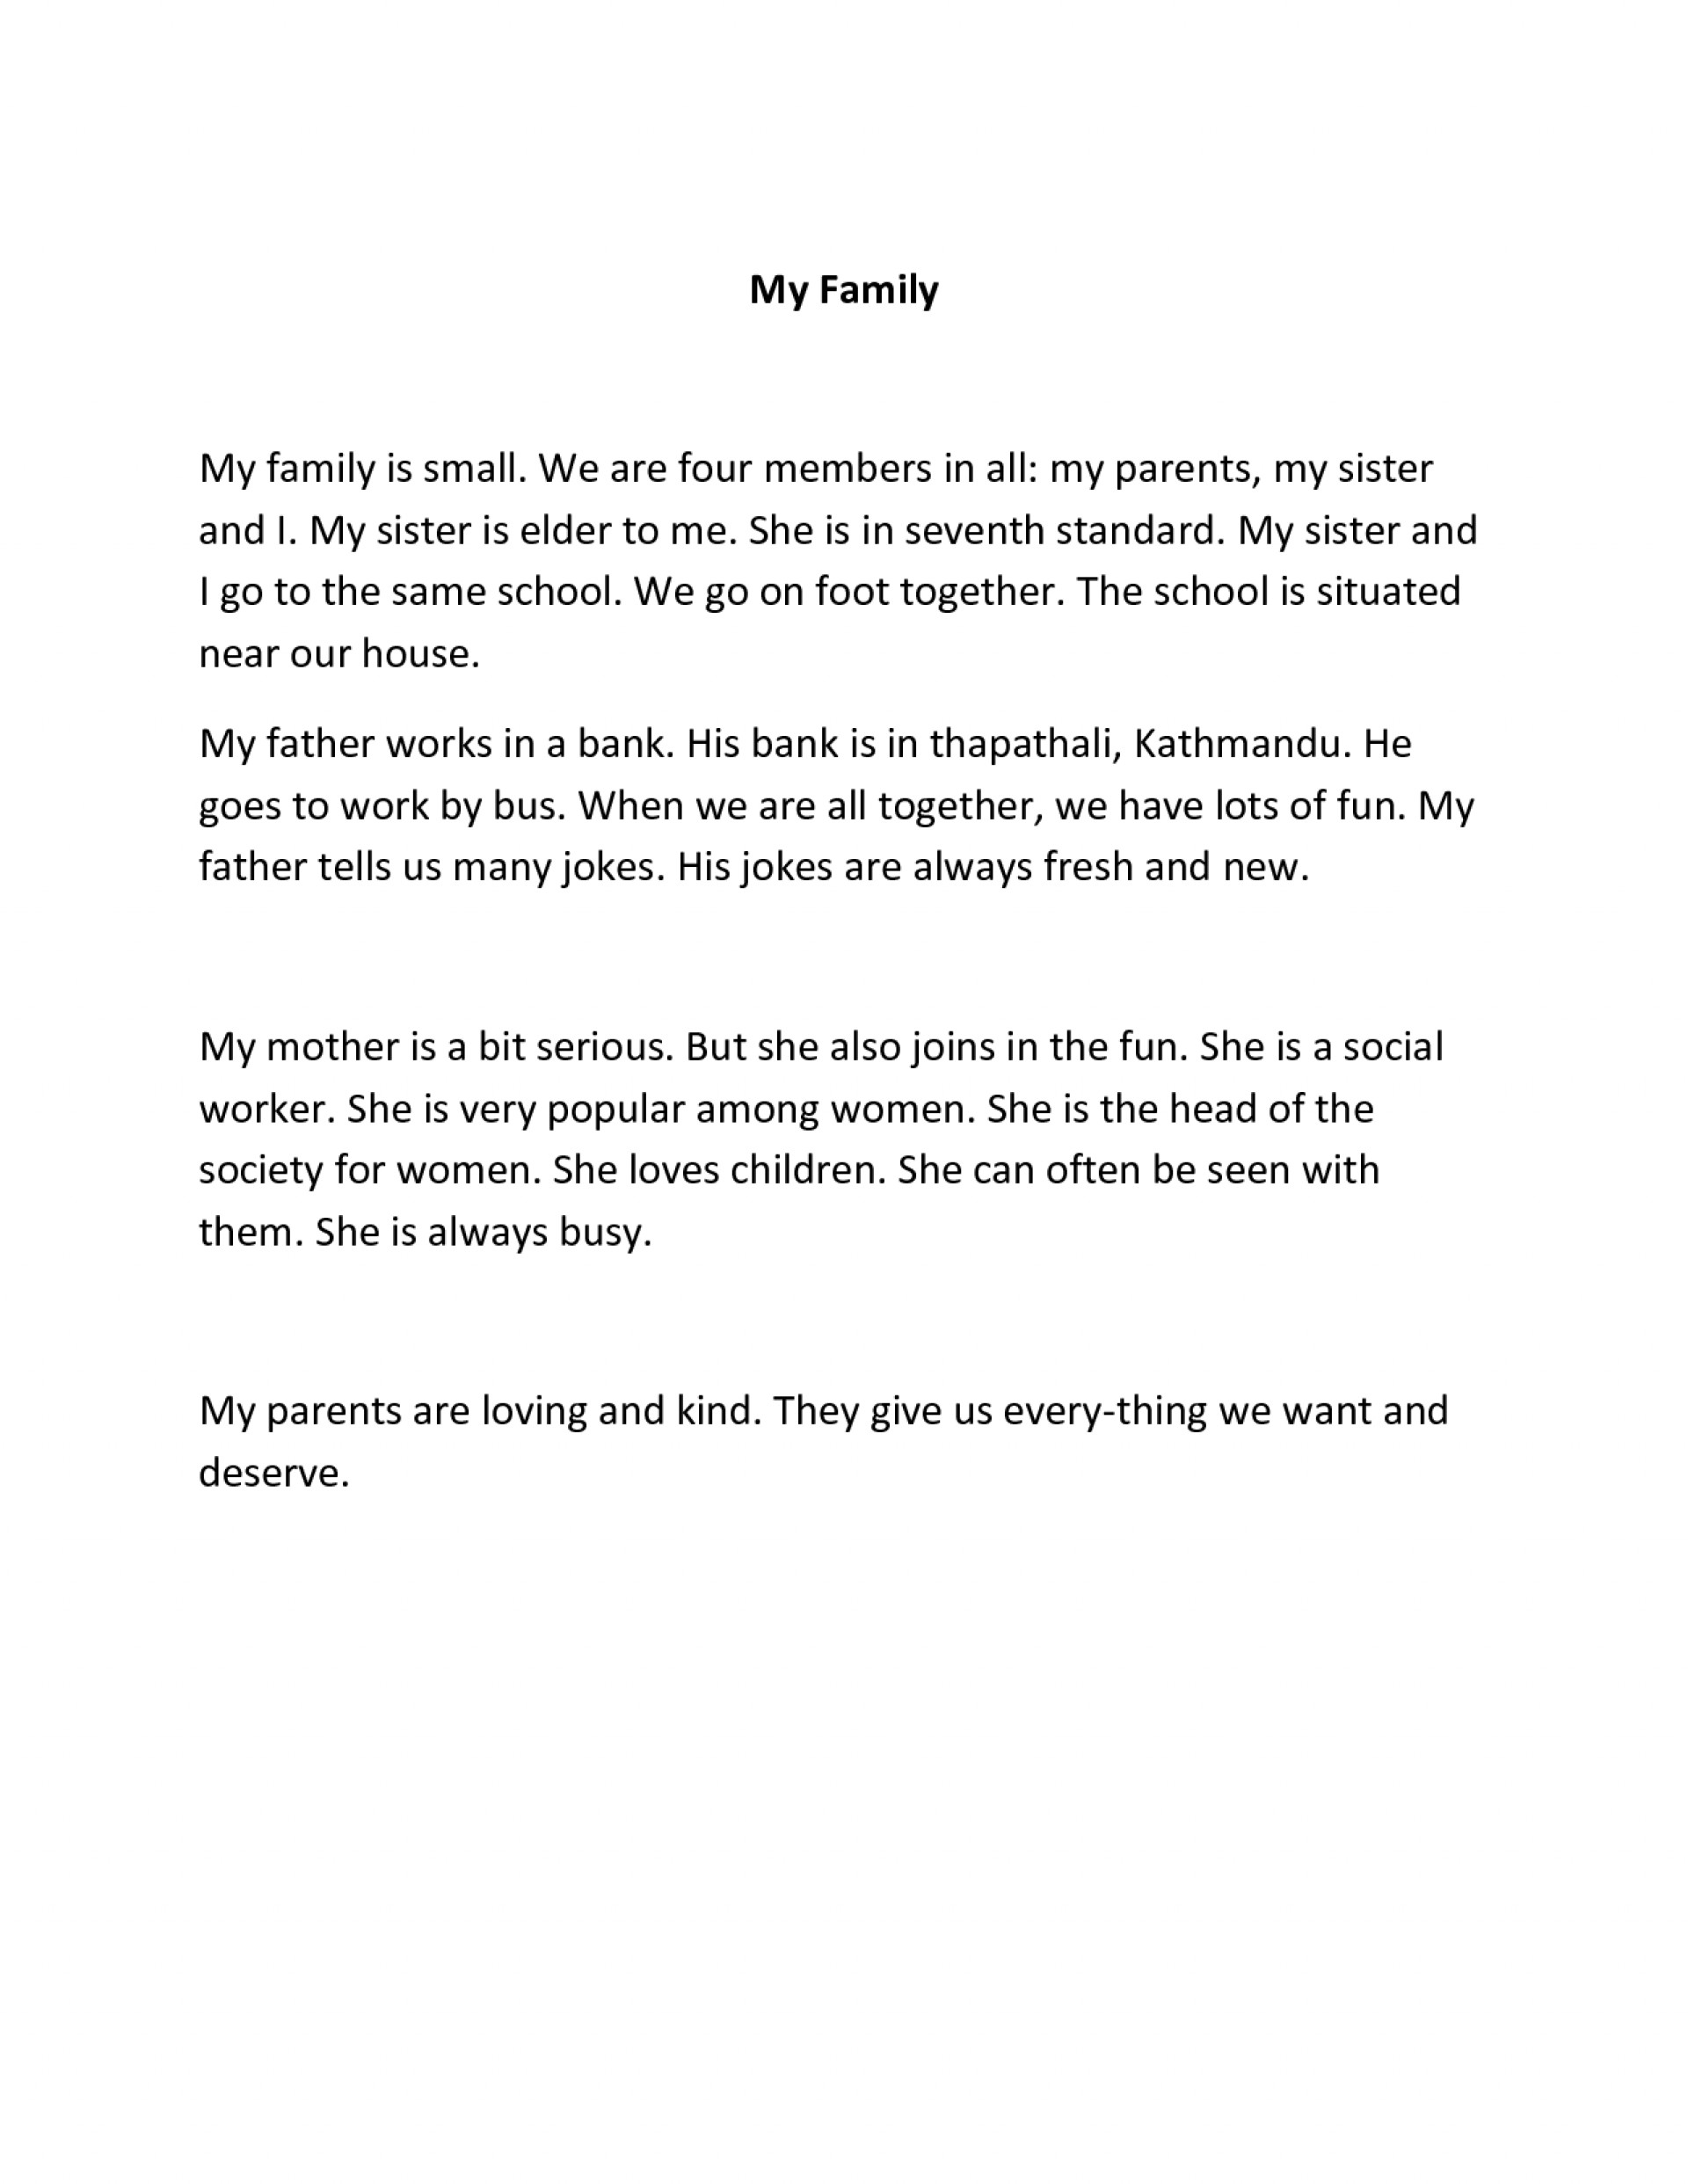 009 Essay About Family Essays Short English My Example For Kindergarten On Class In German I Love Is Always Supportive Hindi French Pet Student Shocking History Influence Values First And Foremost 1920